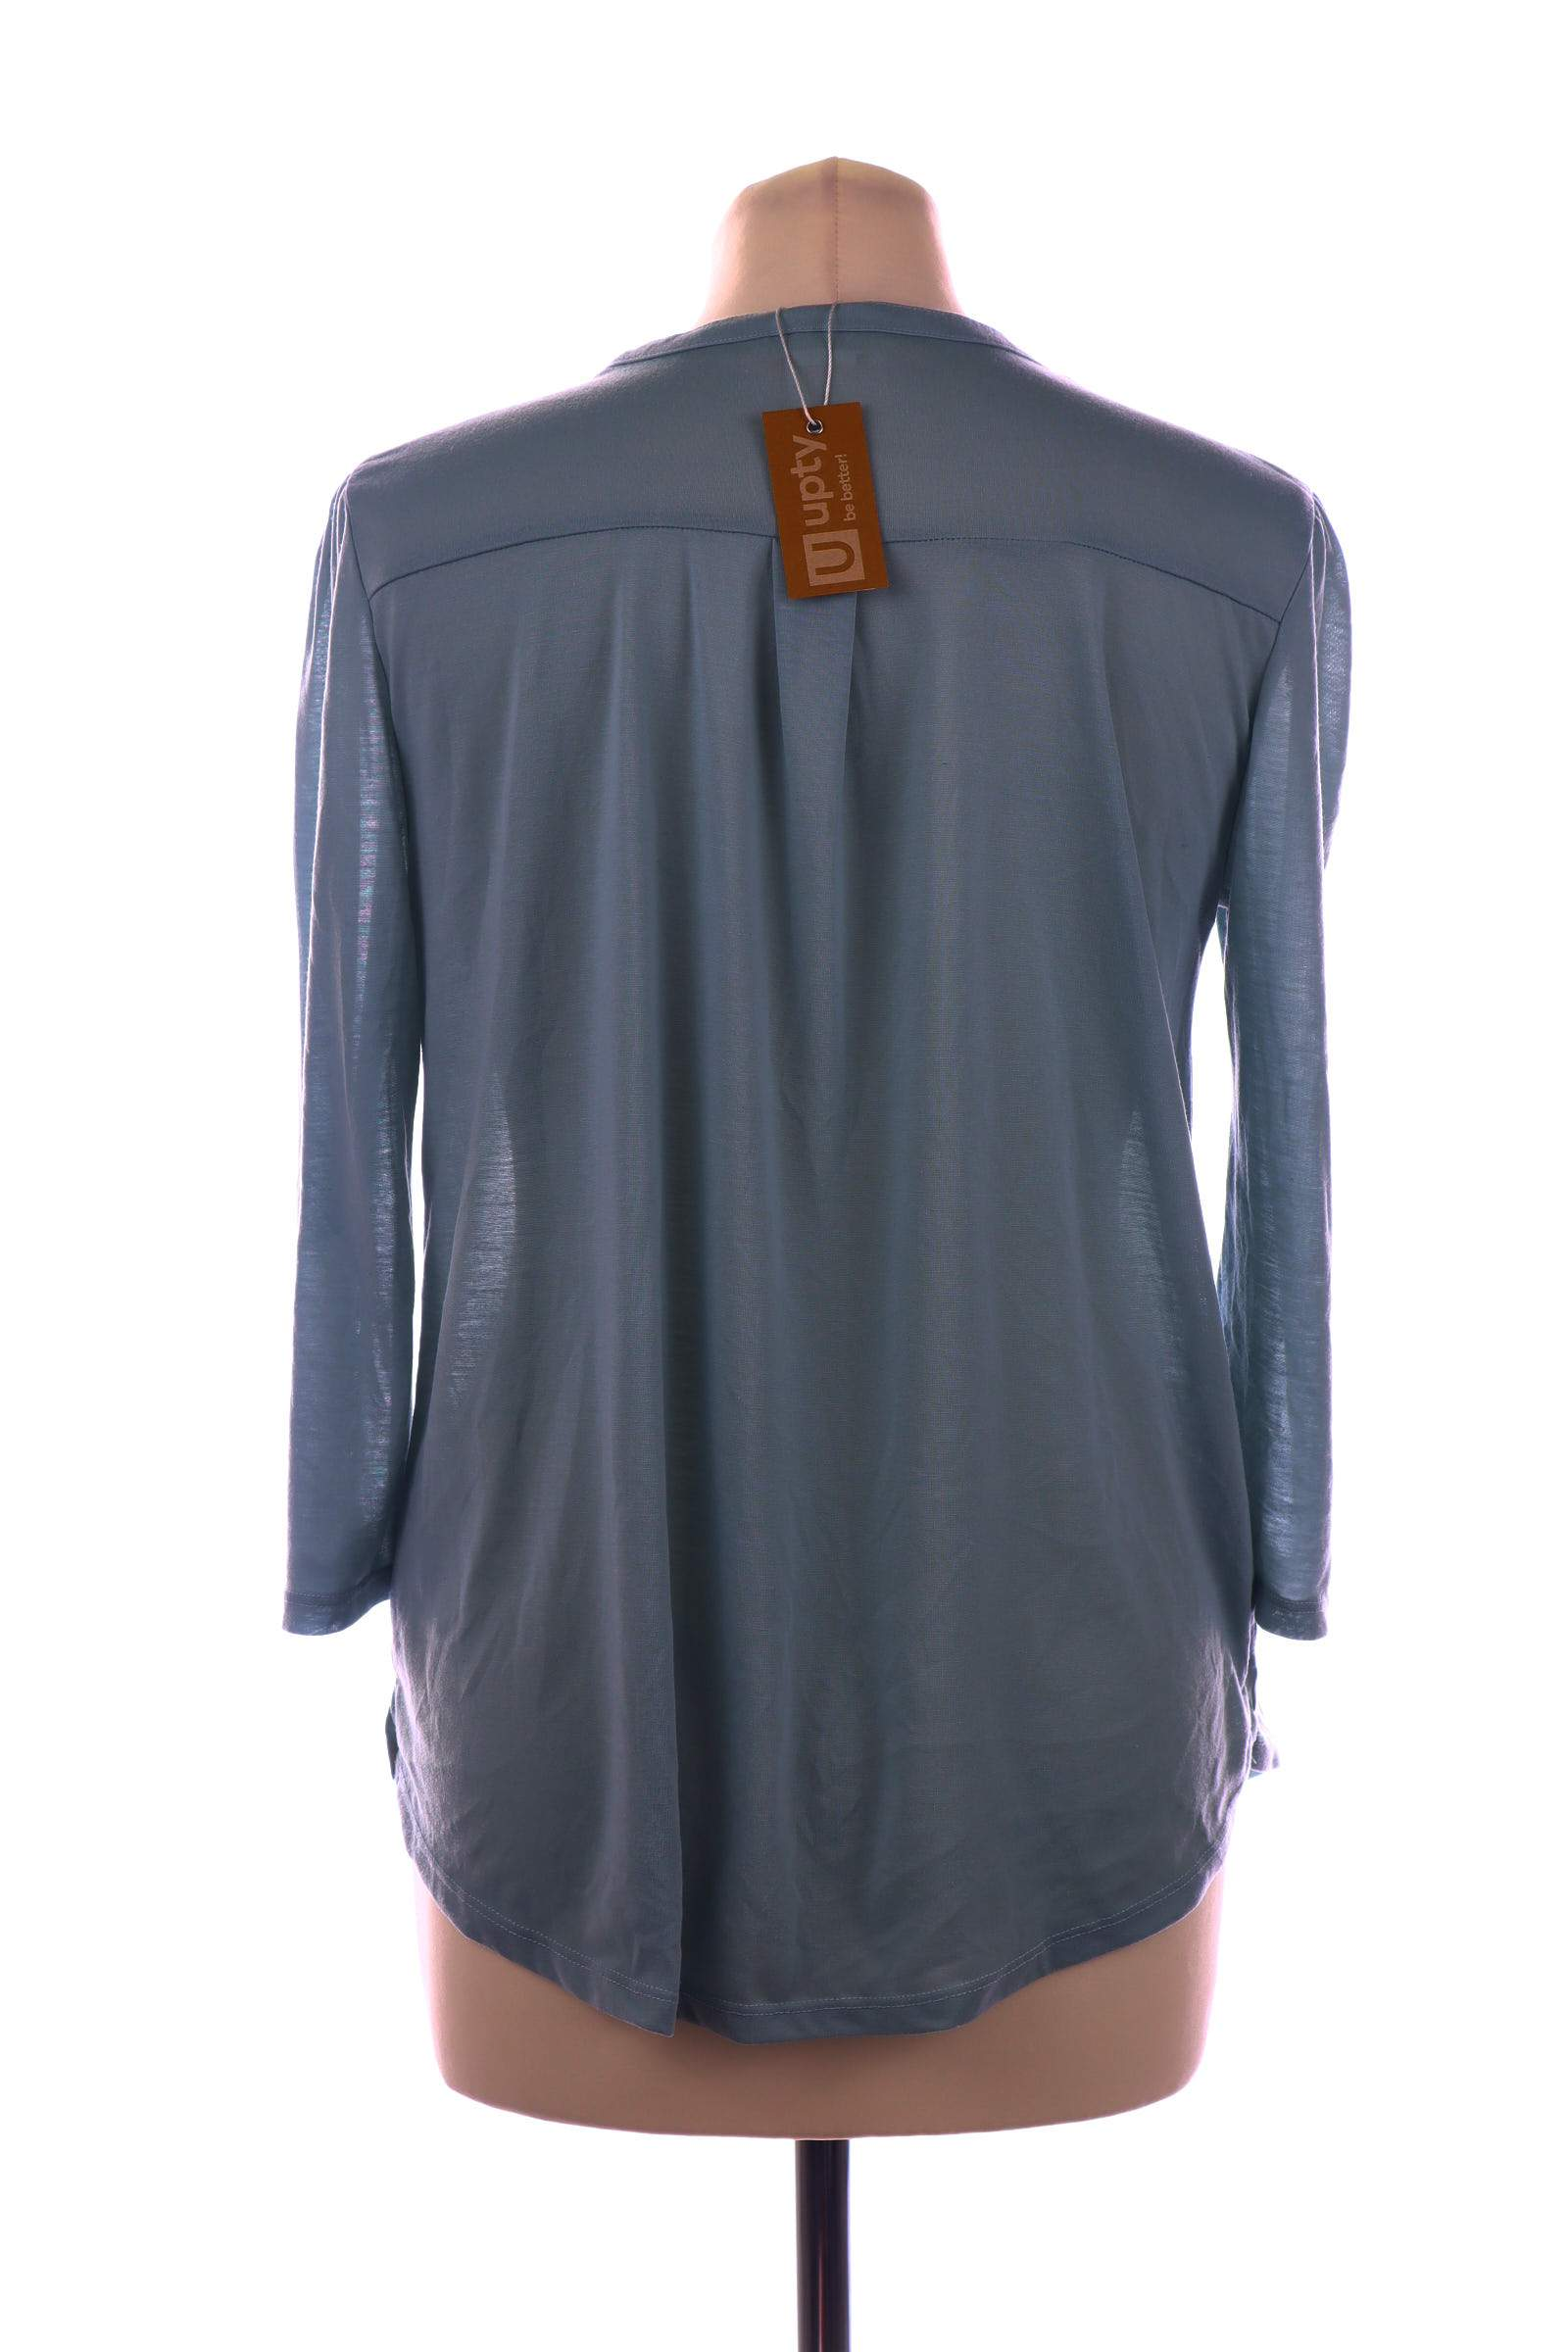 H&M Gray Top